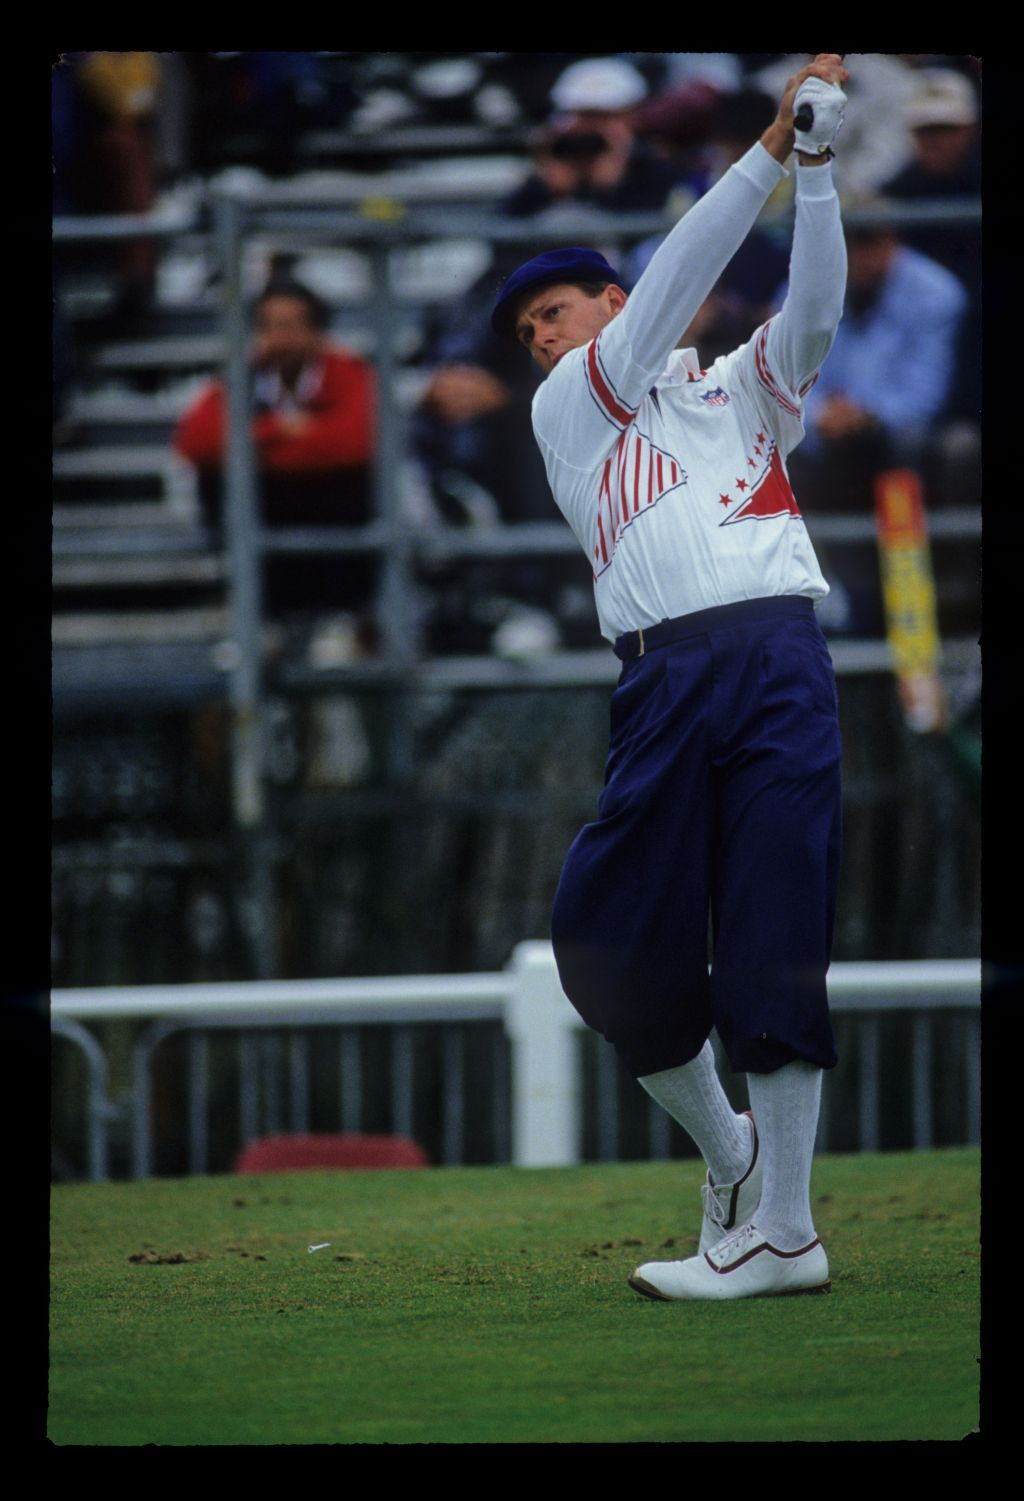 Payne Stewart driving during the 1993 Open Championship.